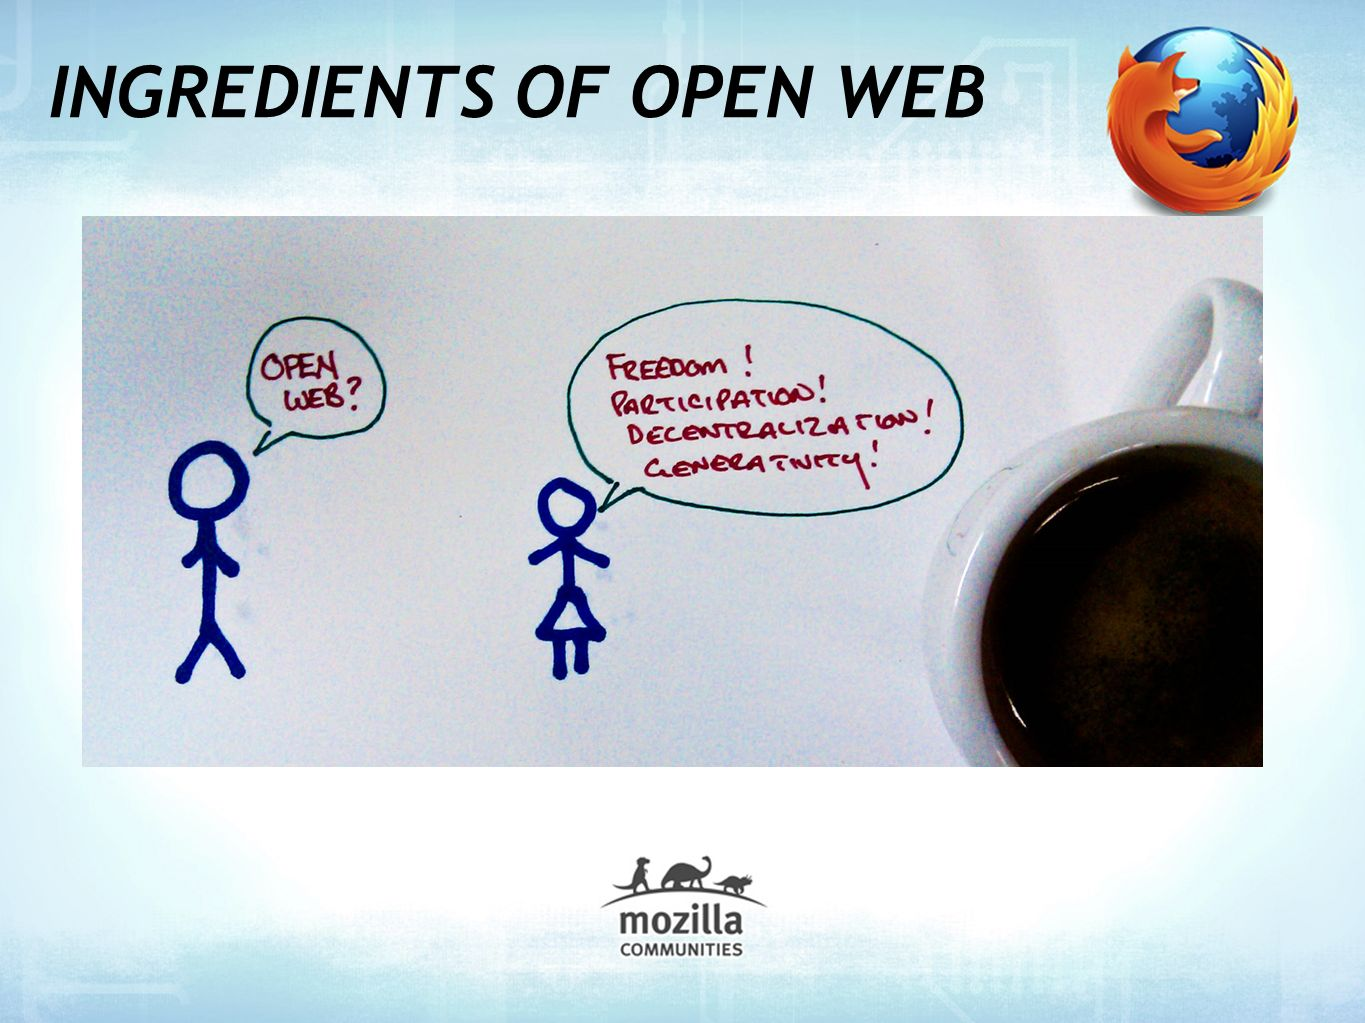 INGREDIENTS OF OPEN WEB